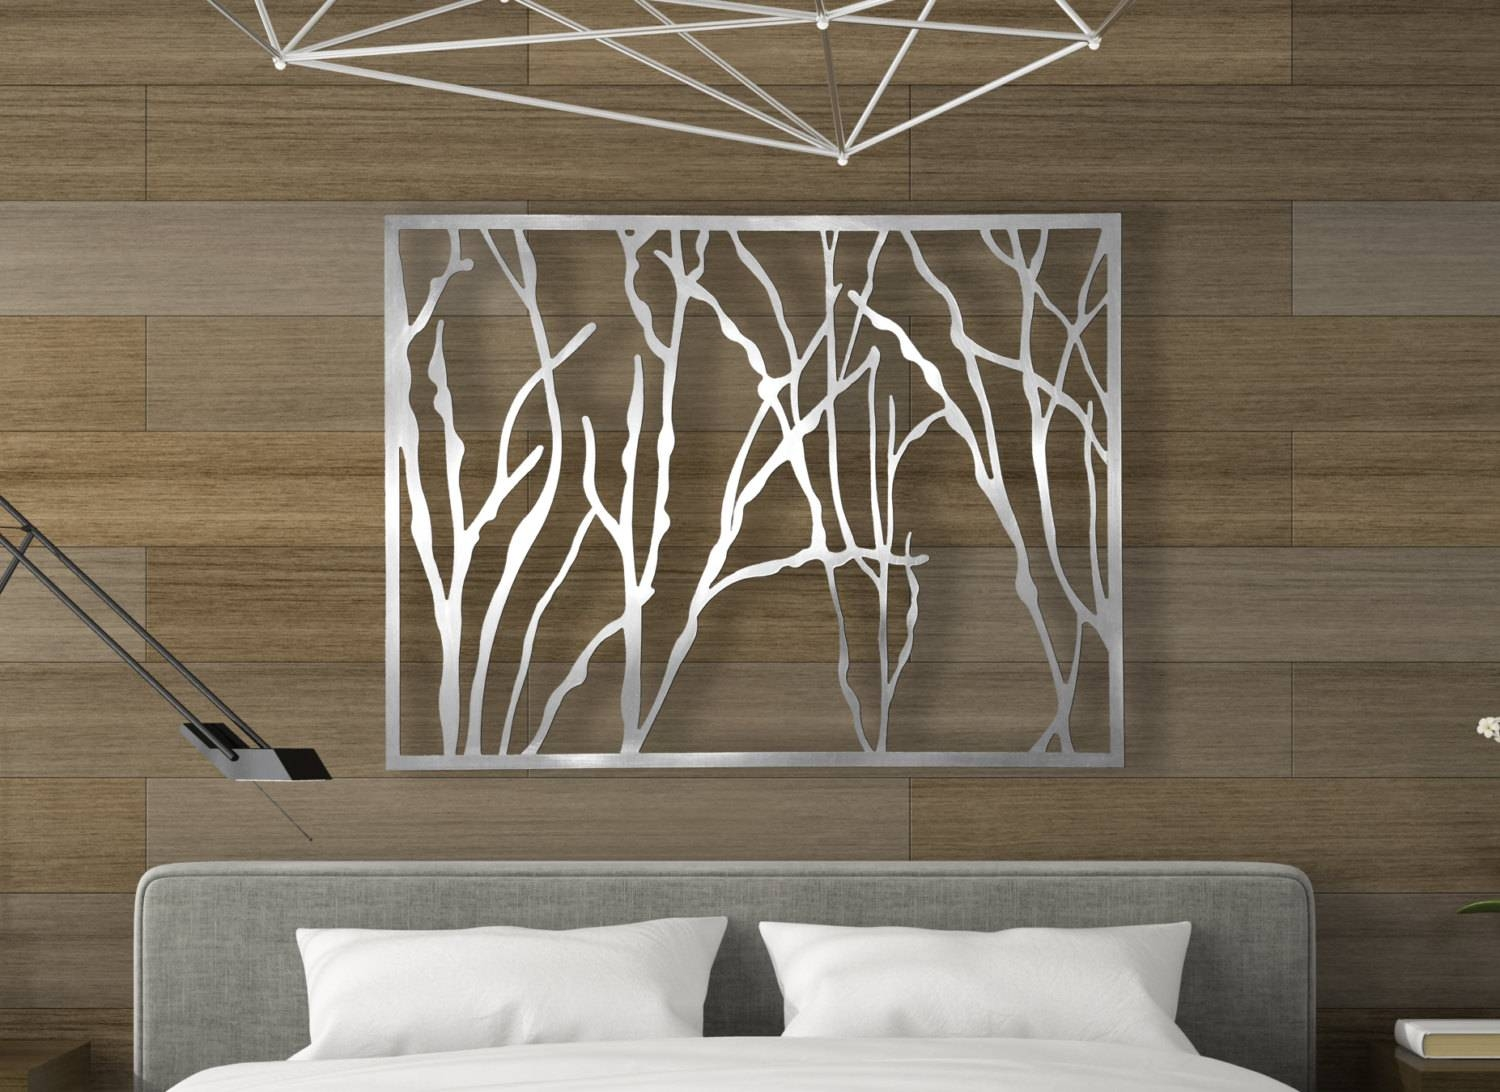 Laser Cut Metal Decorative Wall Art Panel Sculpture For Home Pertaining To Most Current Decorative Metal Wall Art Panels (View 11 of 20)